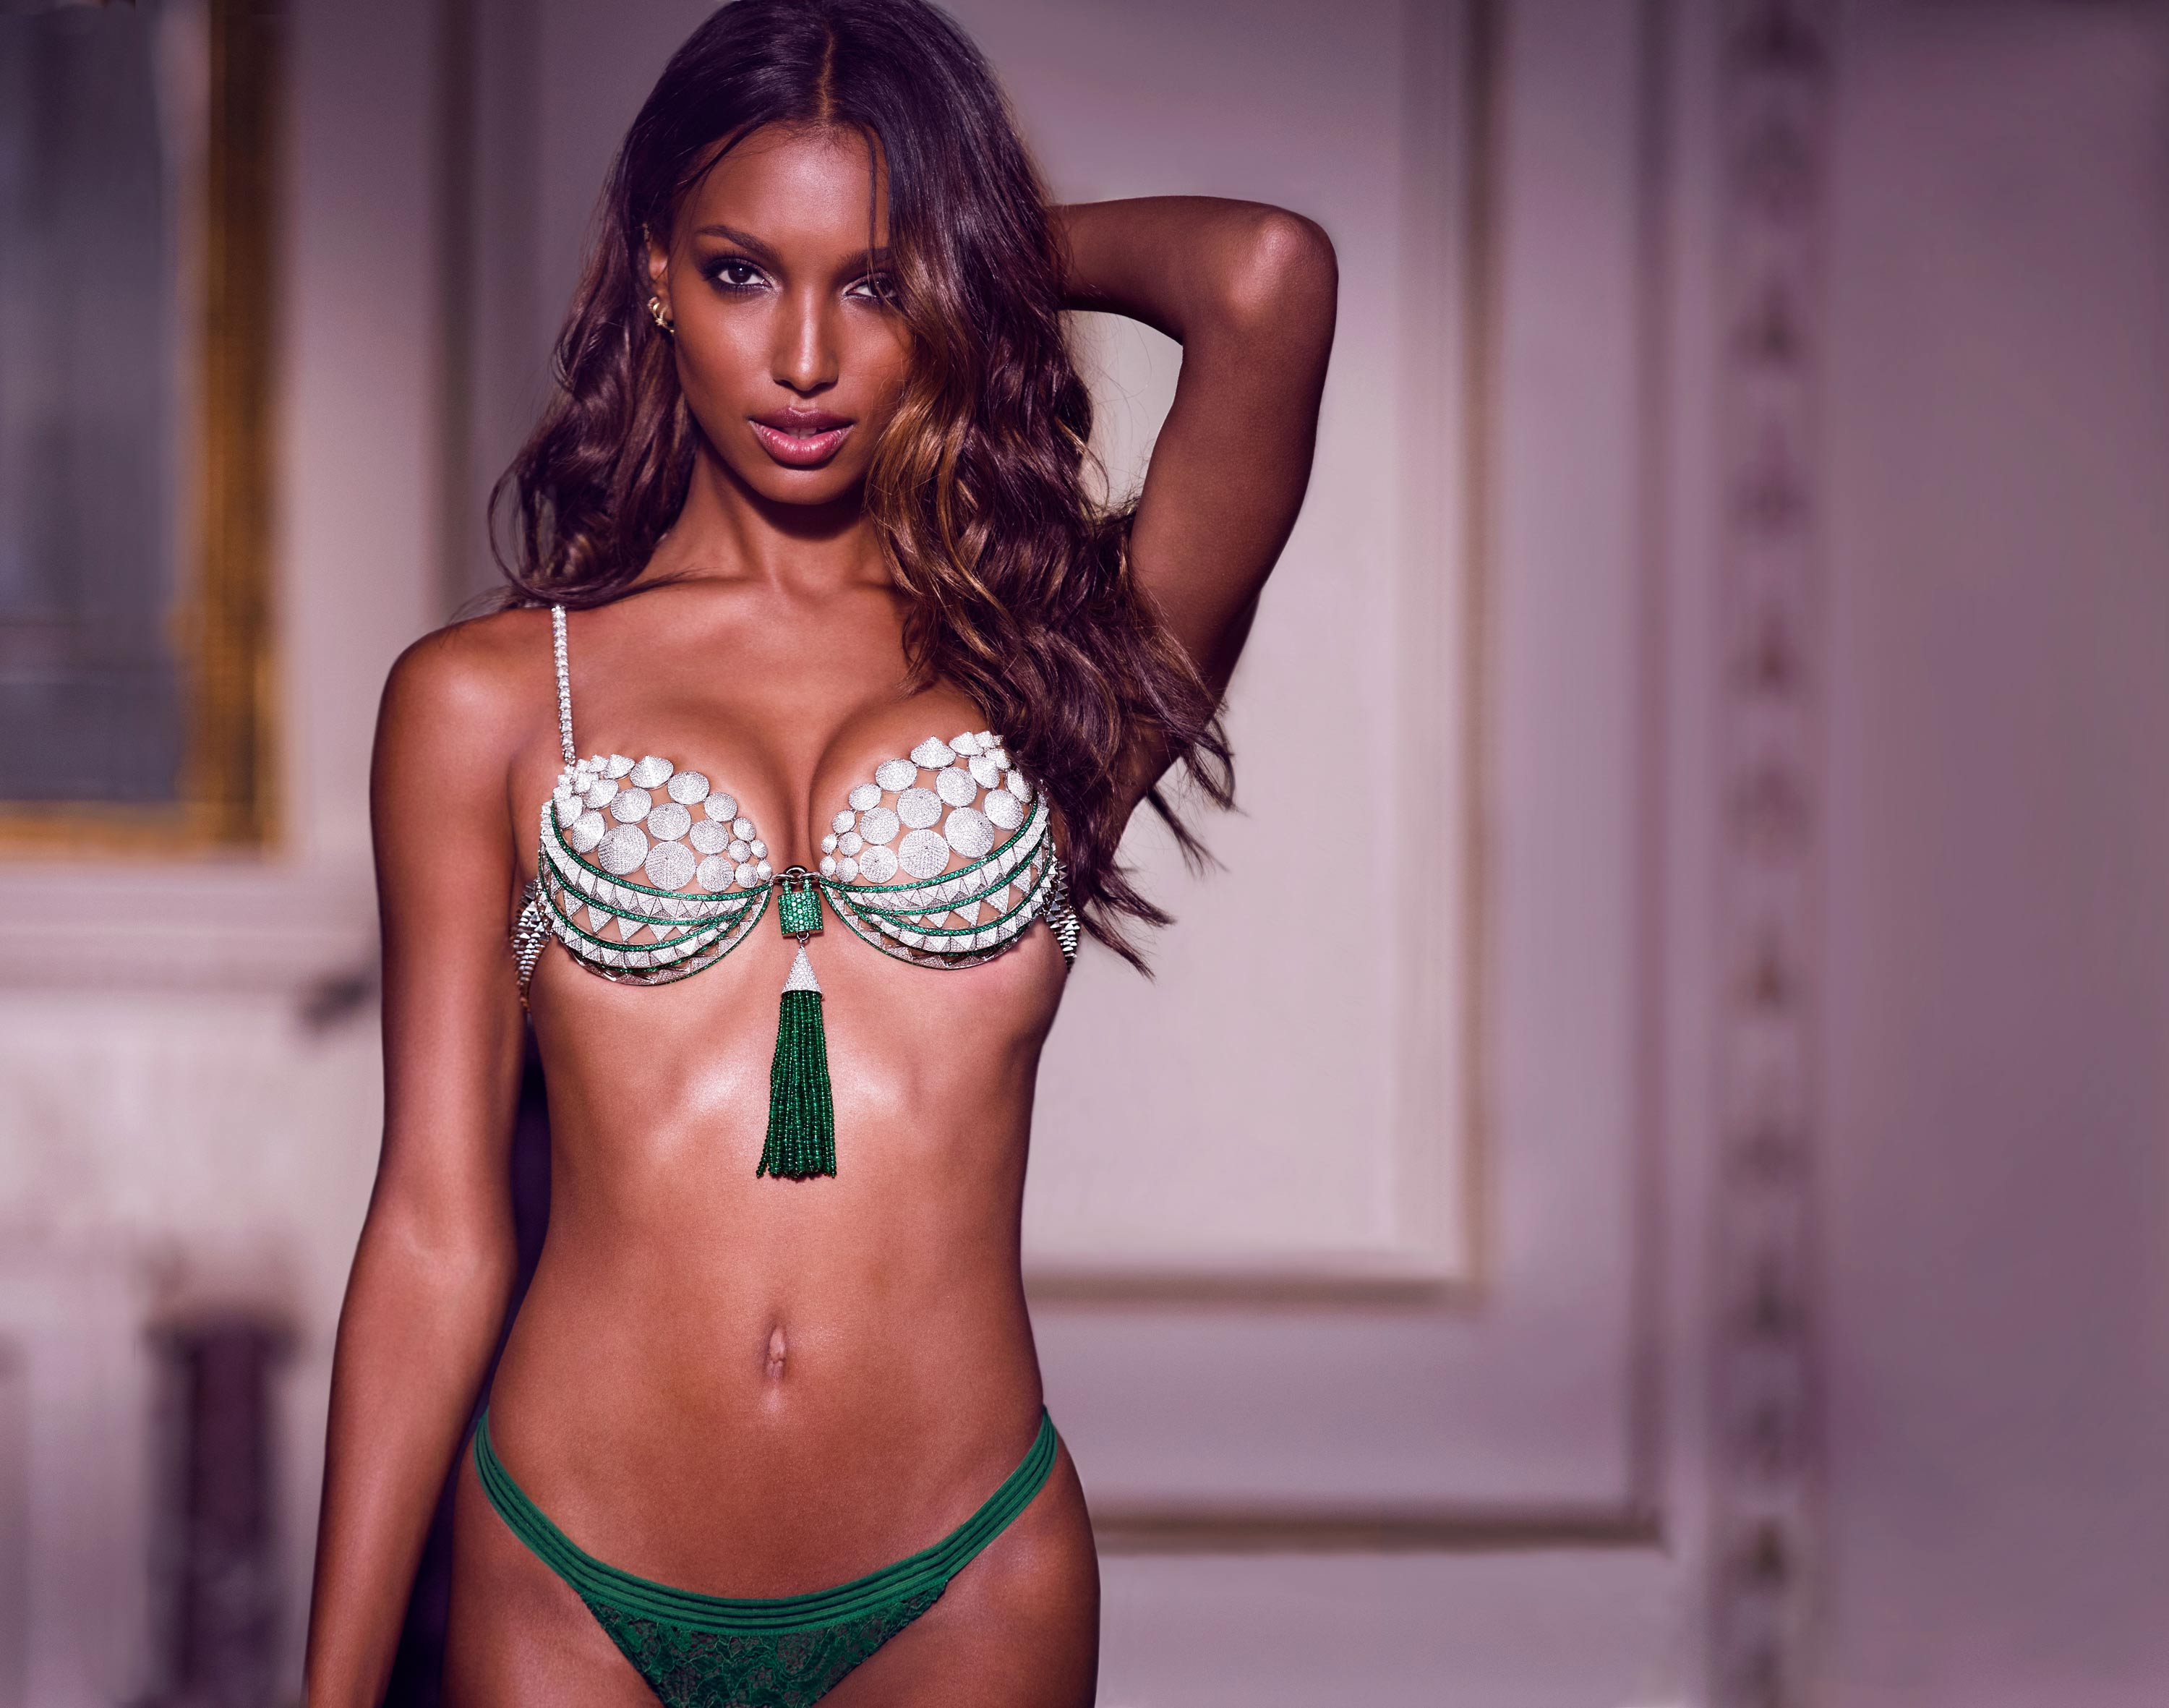 THE BIG REVEAL // Victoria's Secret unveiled this year's Eddie Borgo-designed Fantasy Bra. Jasmine Tookes took everyone on a tour of the Blairsden mansion wearing the emerald and diamond covered bra.